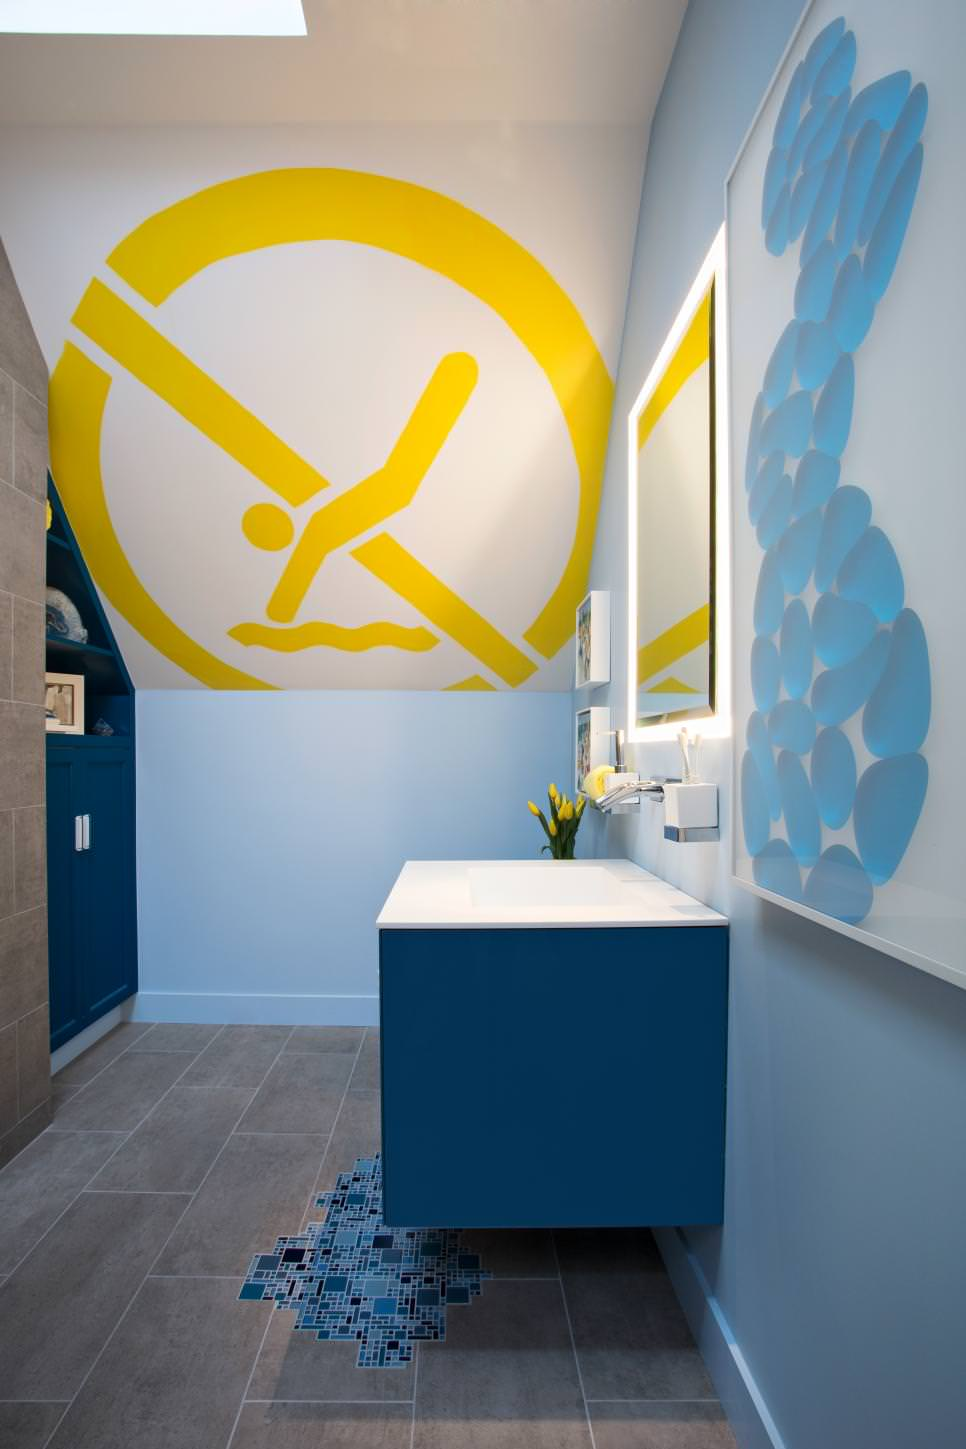 24 artful bathroom ideas designs design trends for Children wall mural ideas